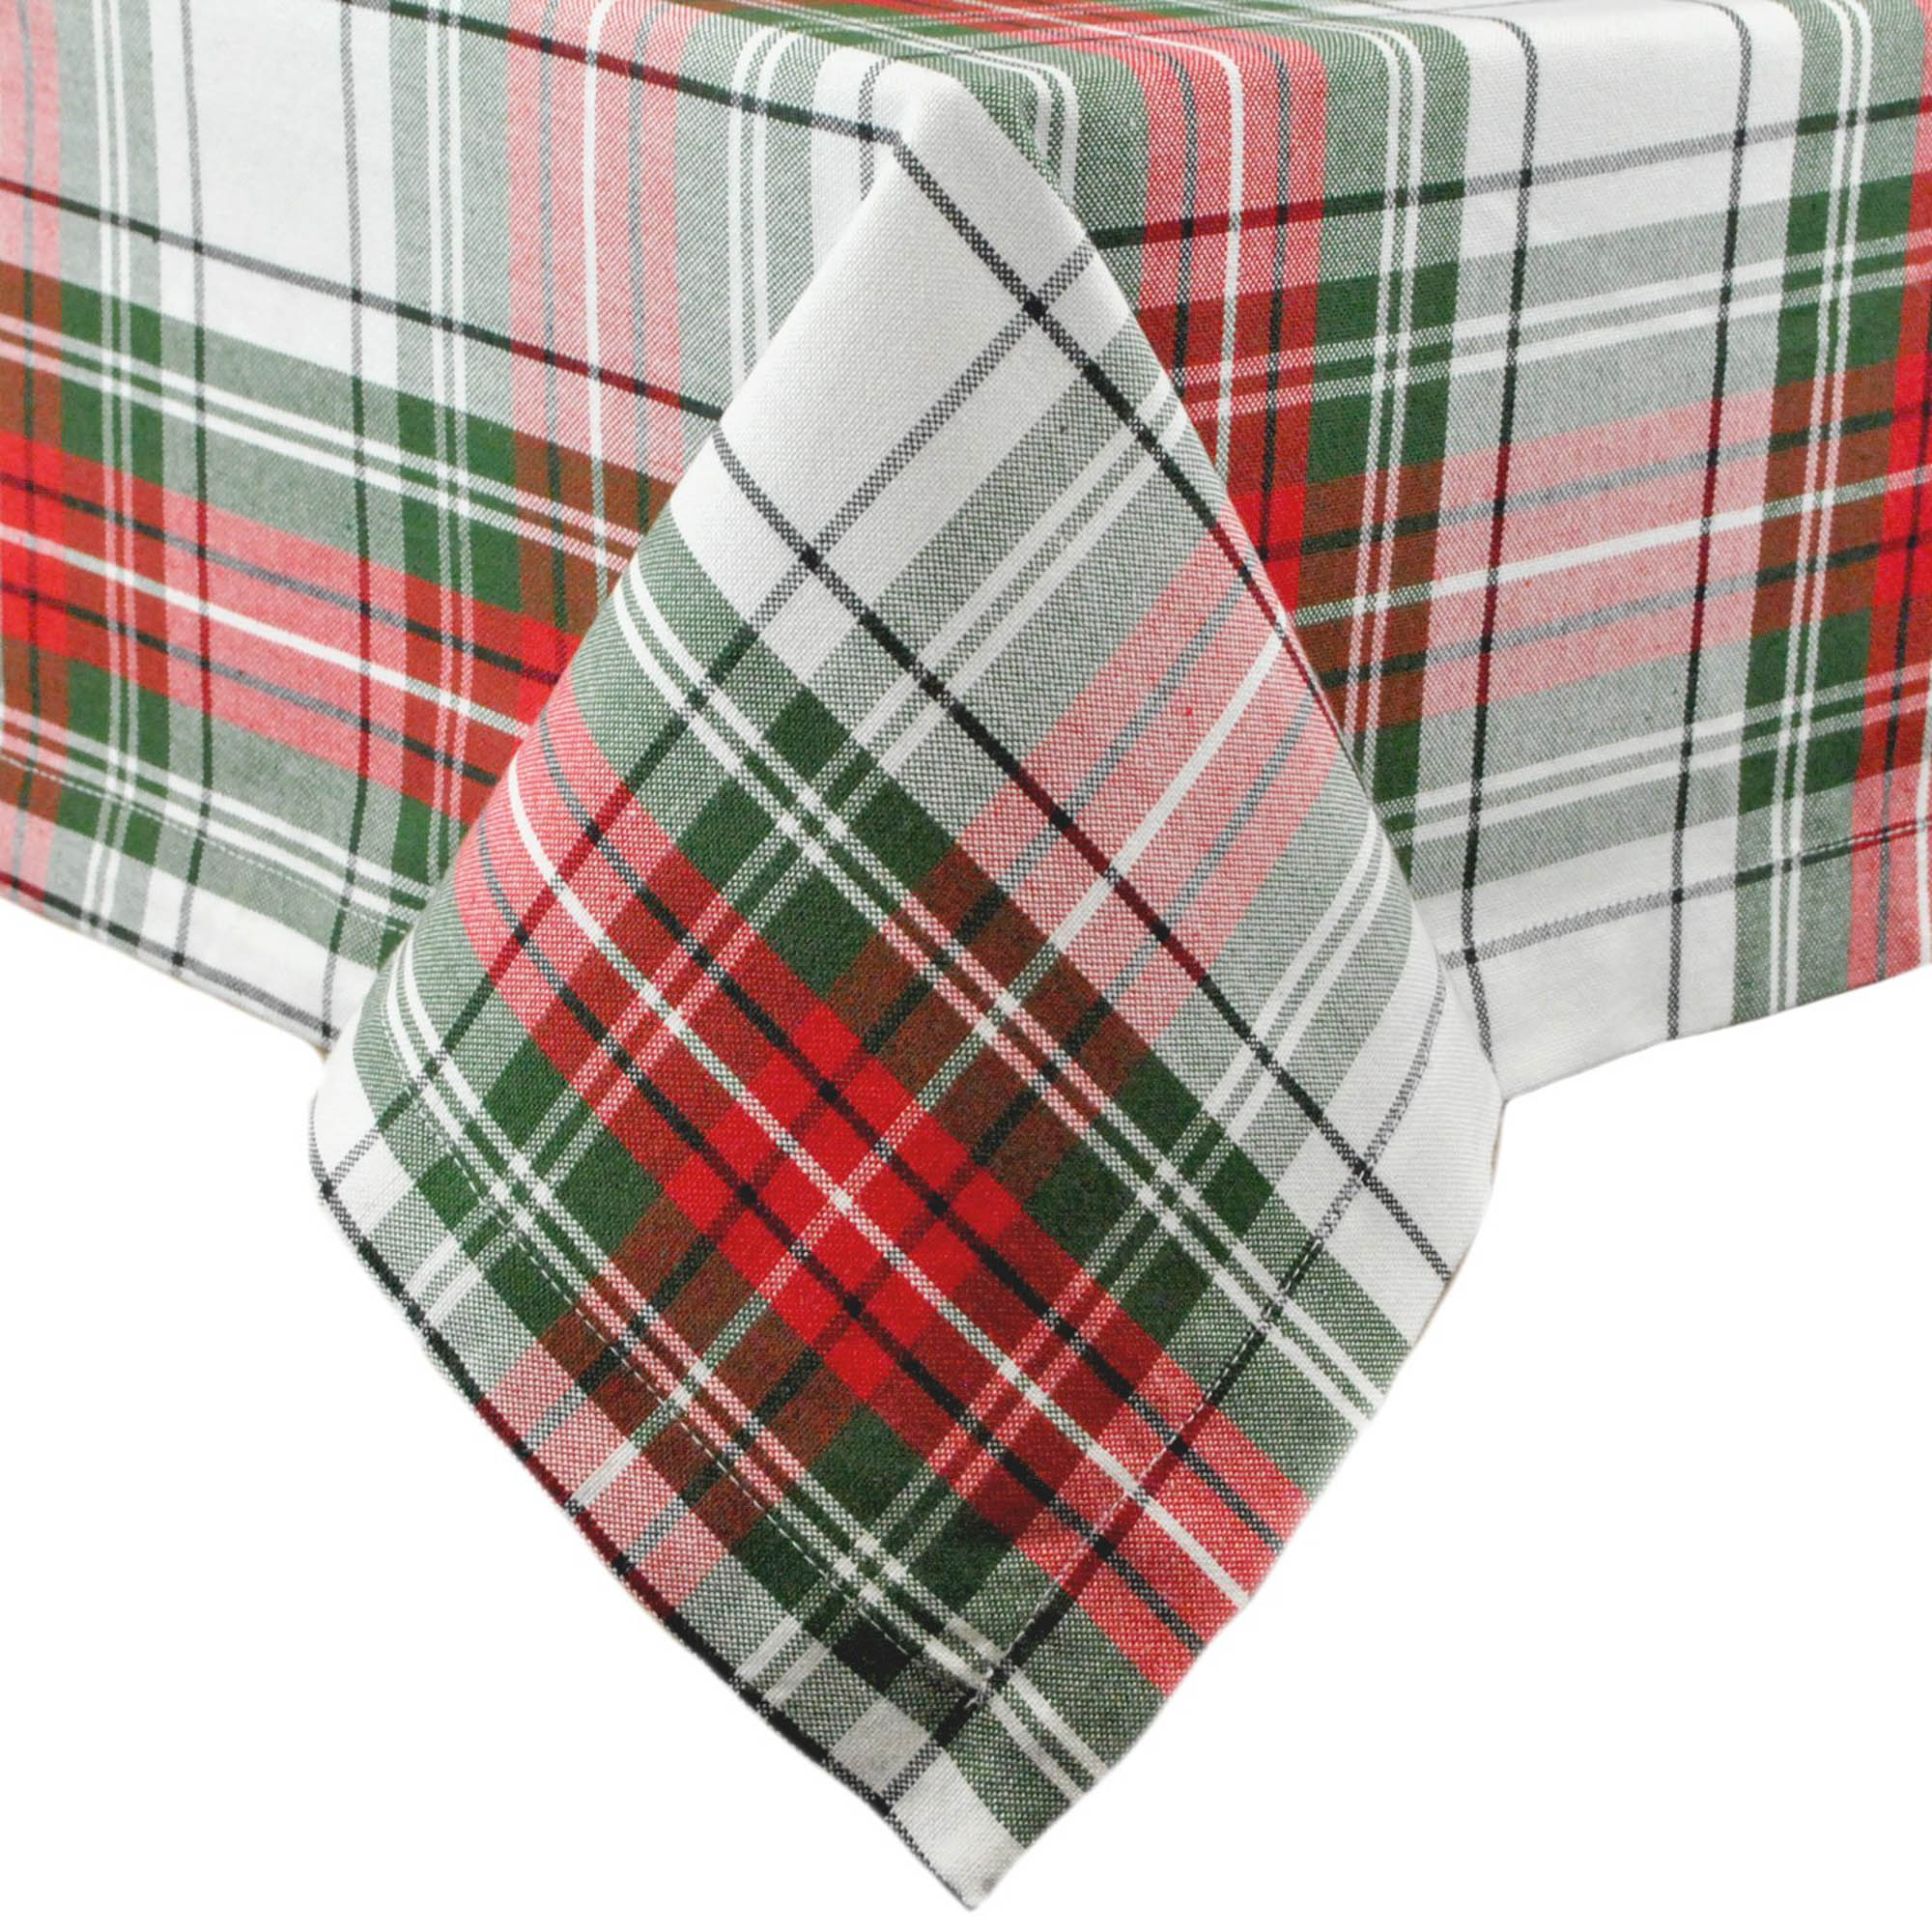 Machine Washable Woodland Christmas Dinner and Holiday Tablecloth 60x120 Seats 10 to 12 People DII 100/% Cotton